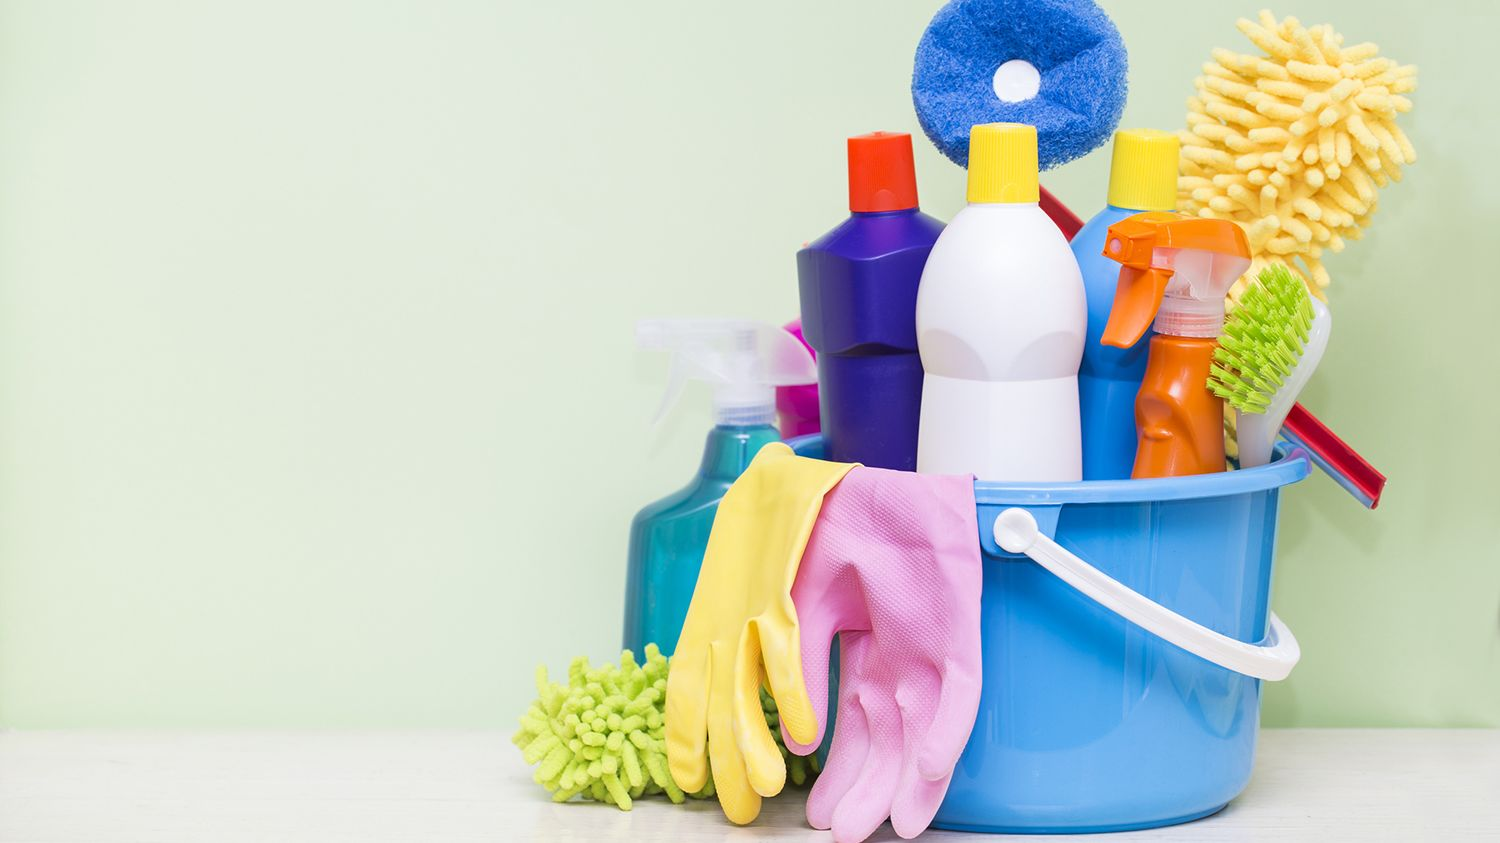 Simple life hacks to use next time you clean the house